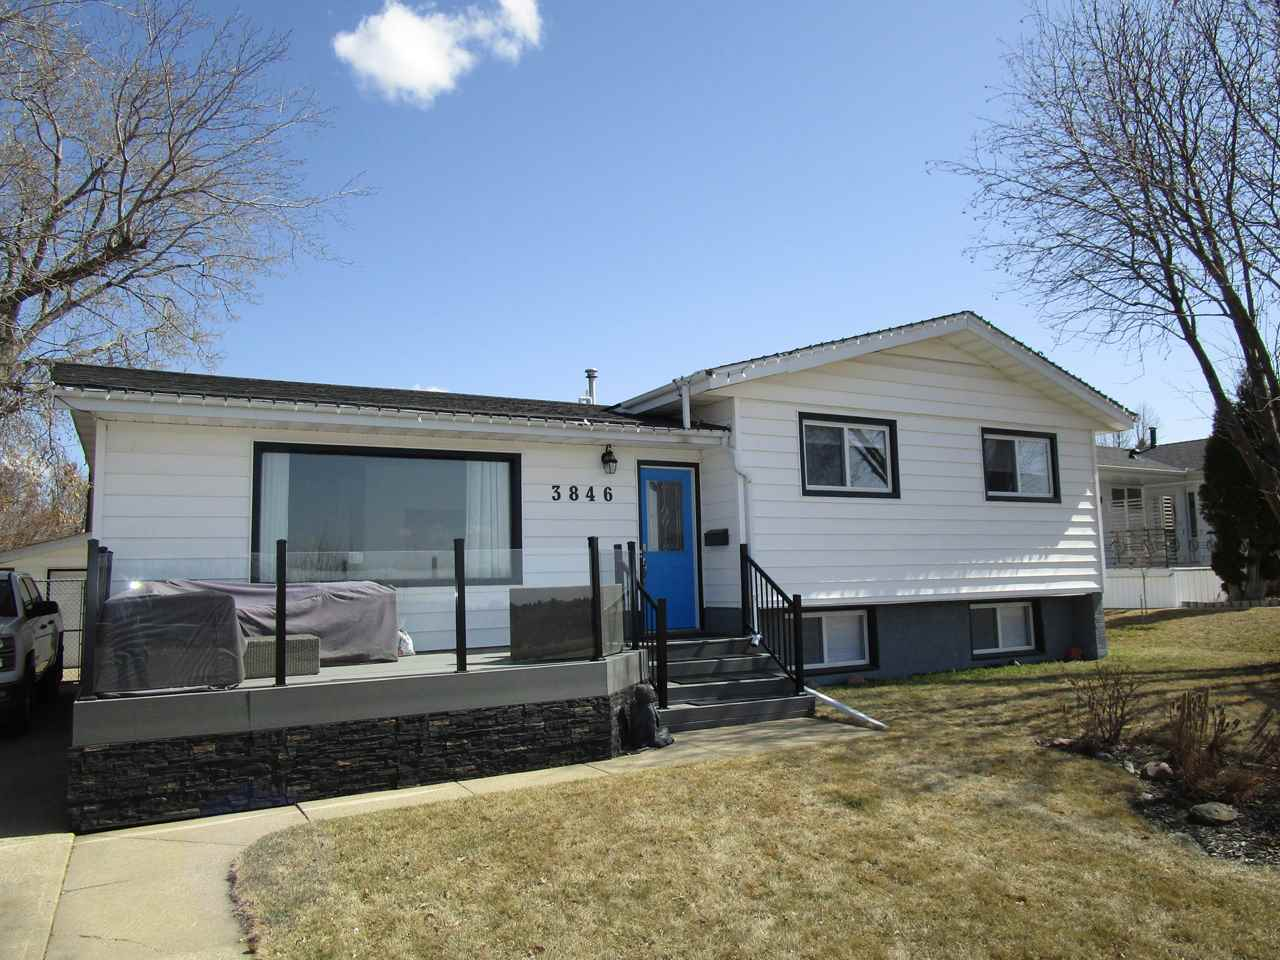 Main Photo: 3846 ADA Boulevard in Edmonton: Zone 23 House for sale : MLS®# E4109587